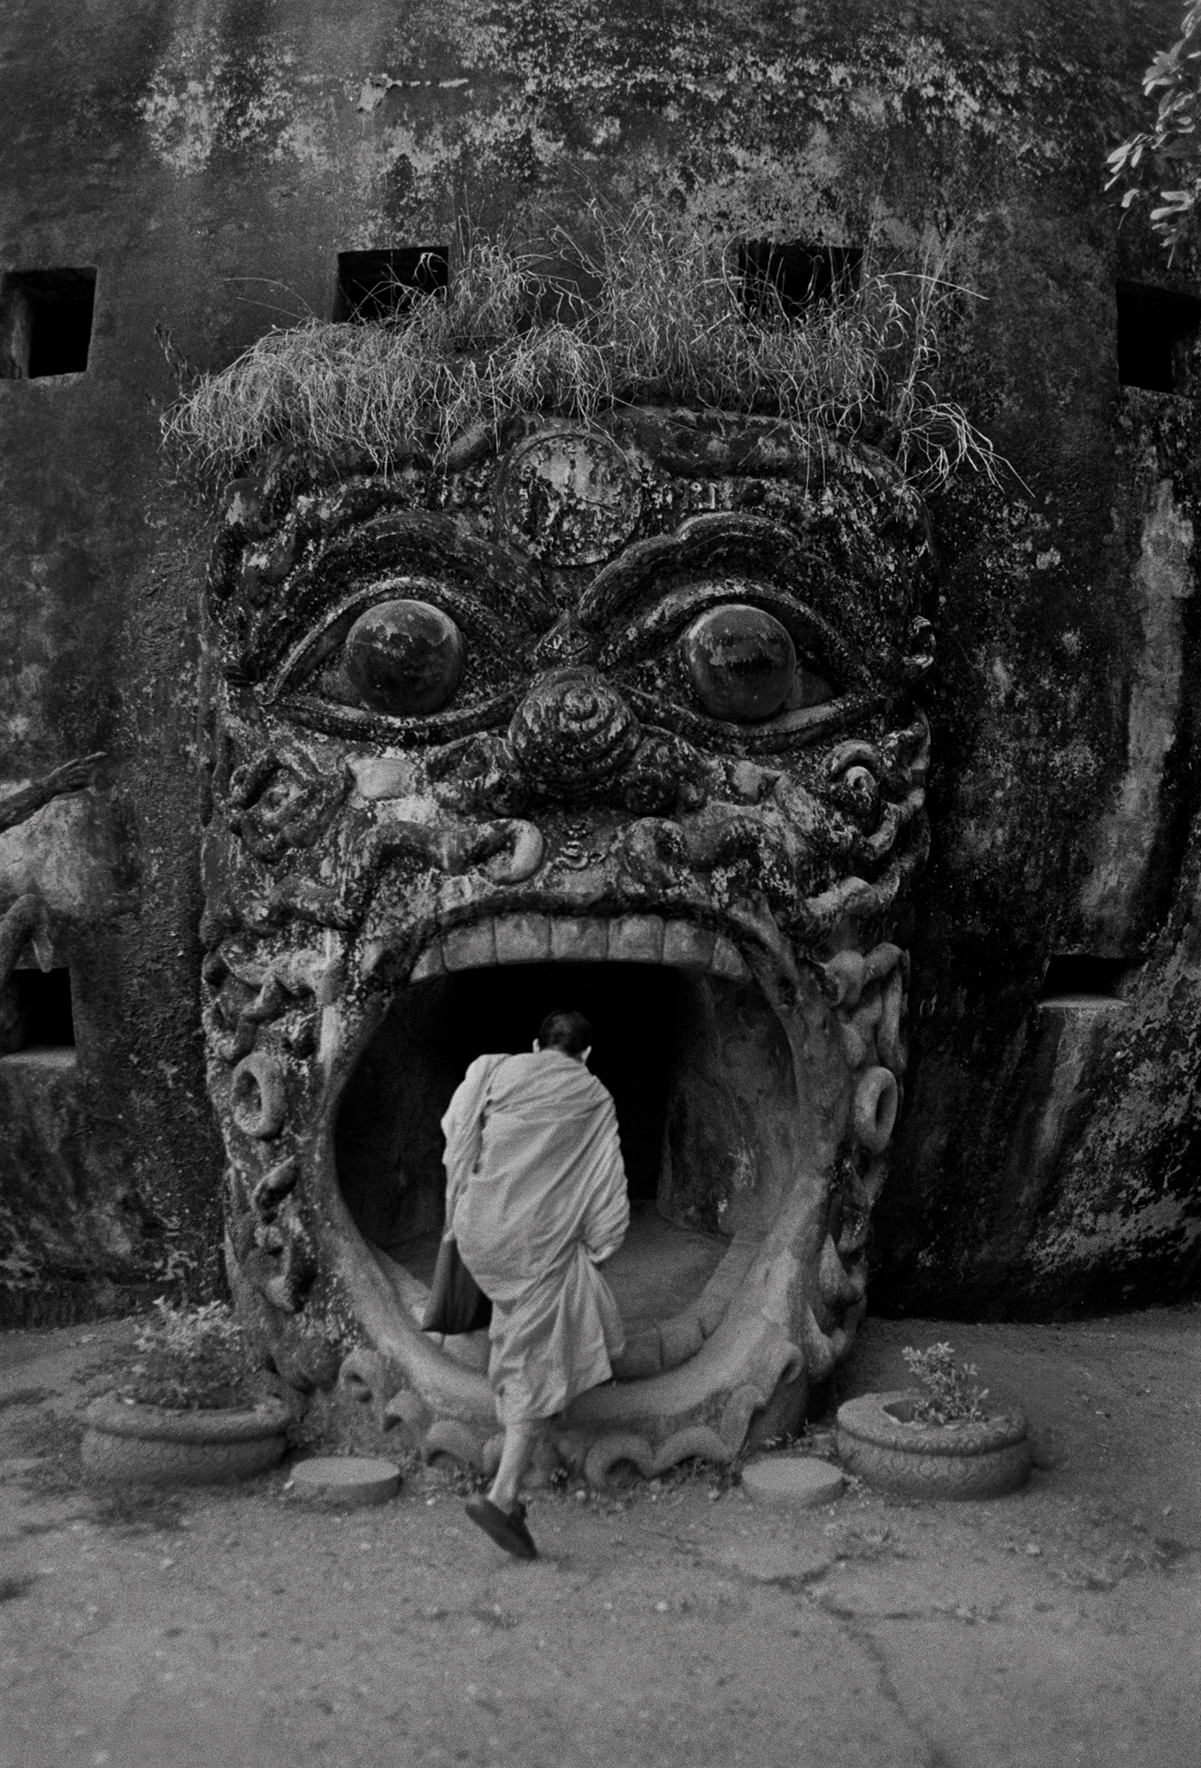 Buddha Park, also known as Xieng Khuan, is a sculpture park located 25 km southeast from Vientiane, Laos. 2000